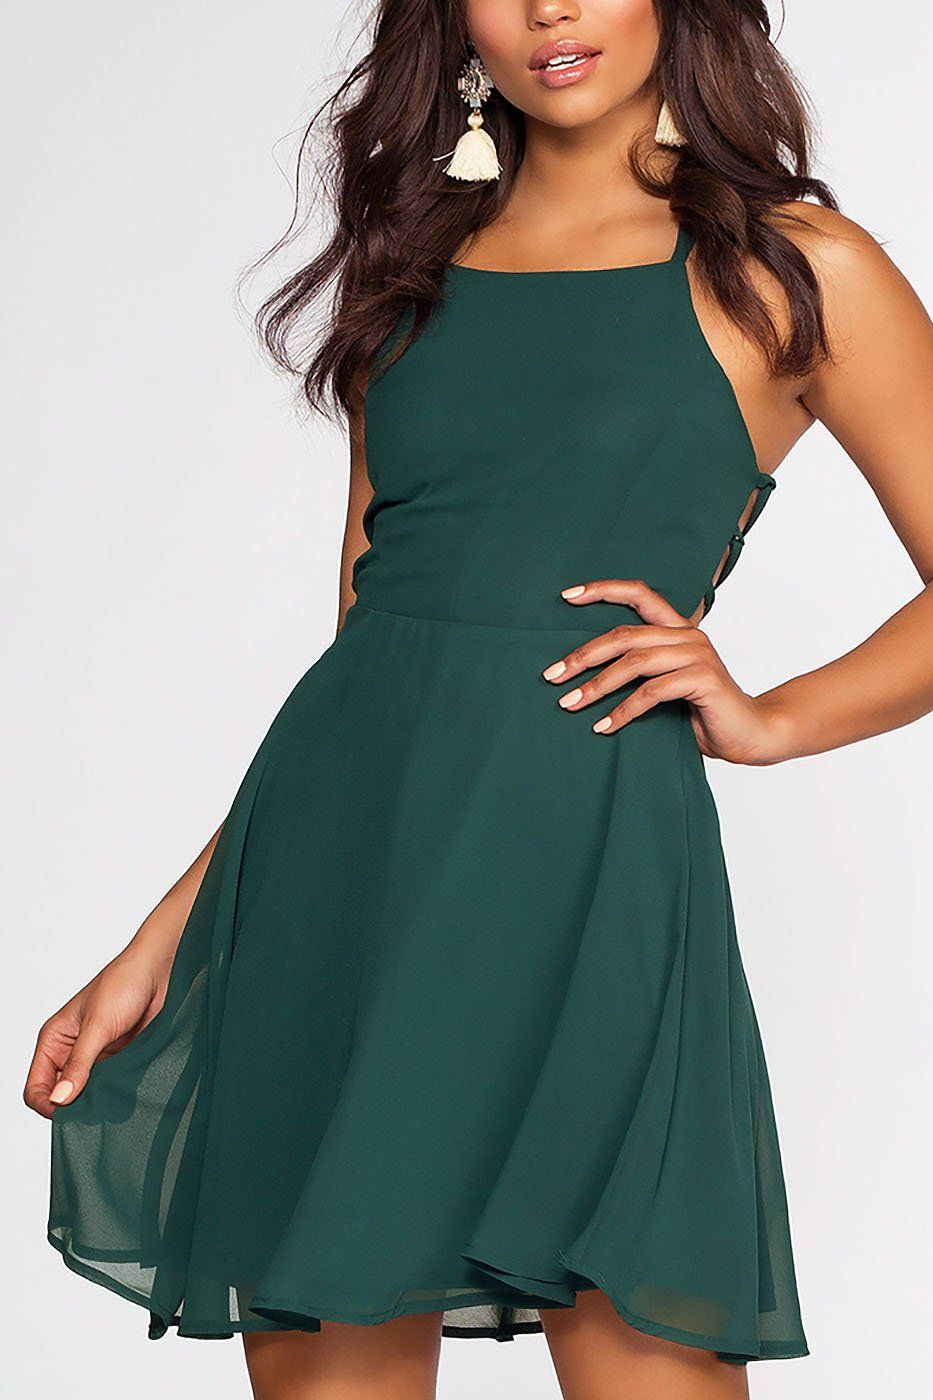 Roxy Dress - Hunter | Listicle